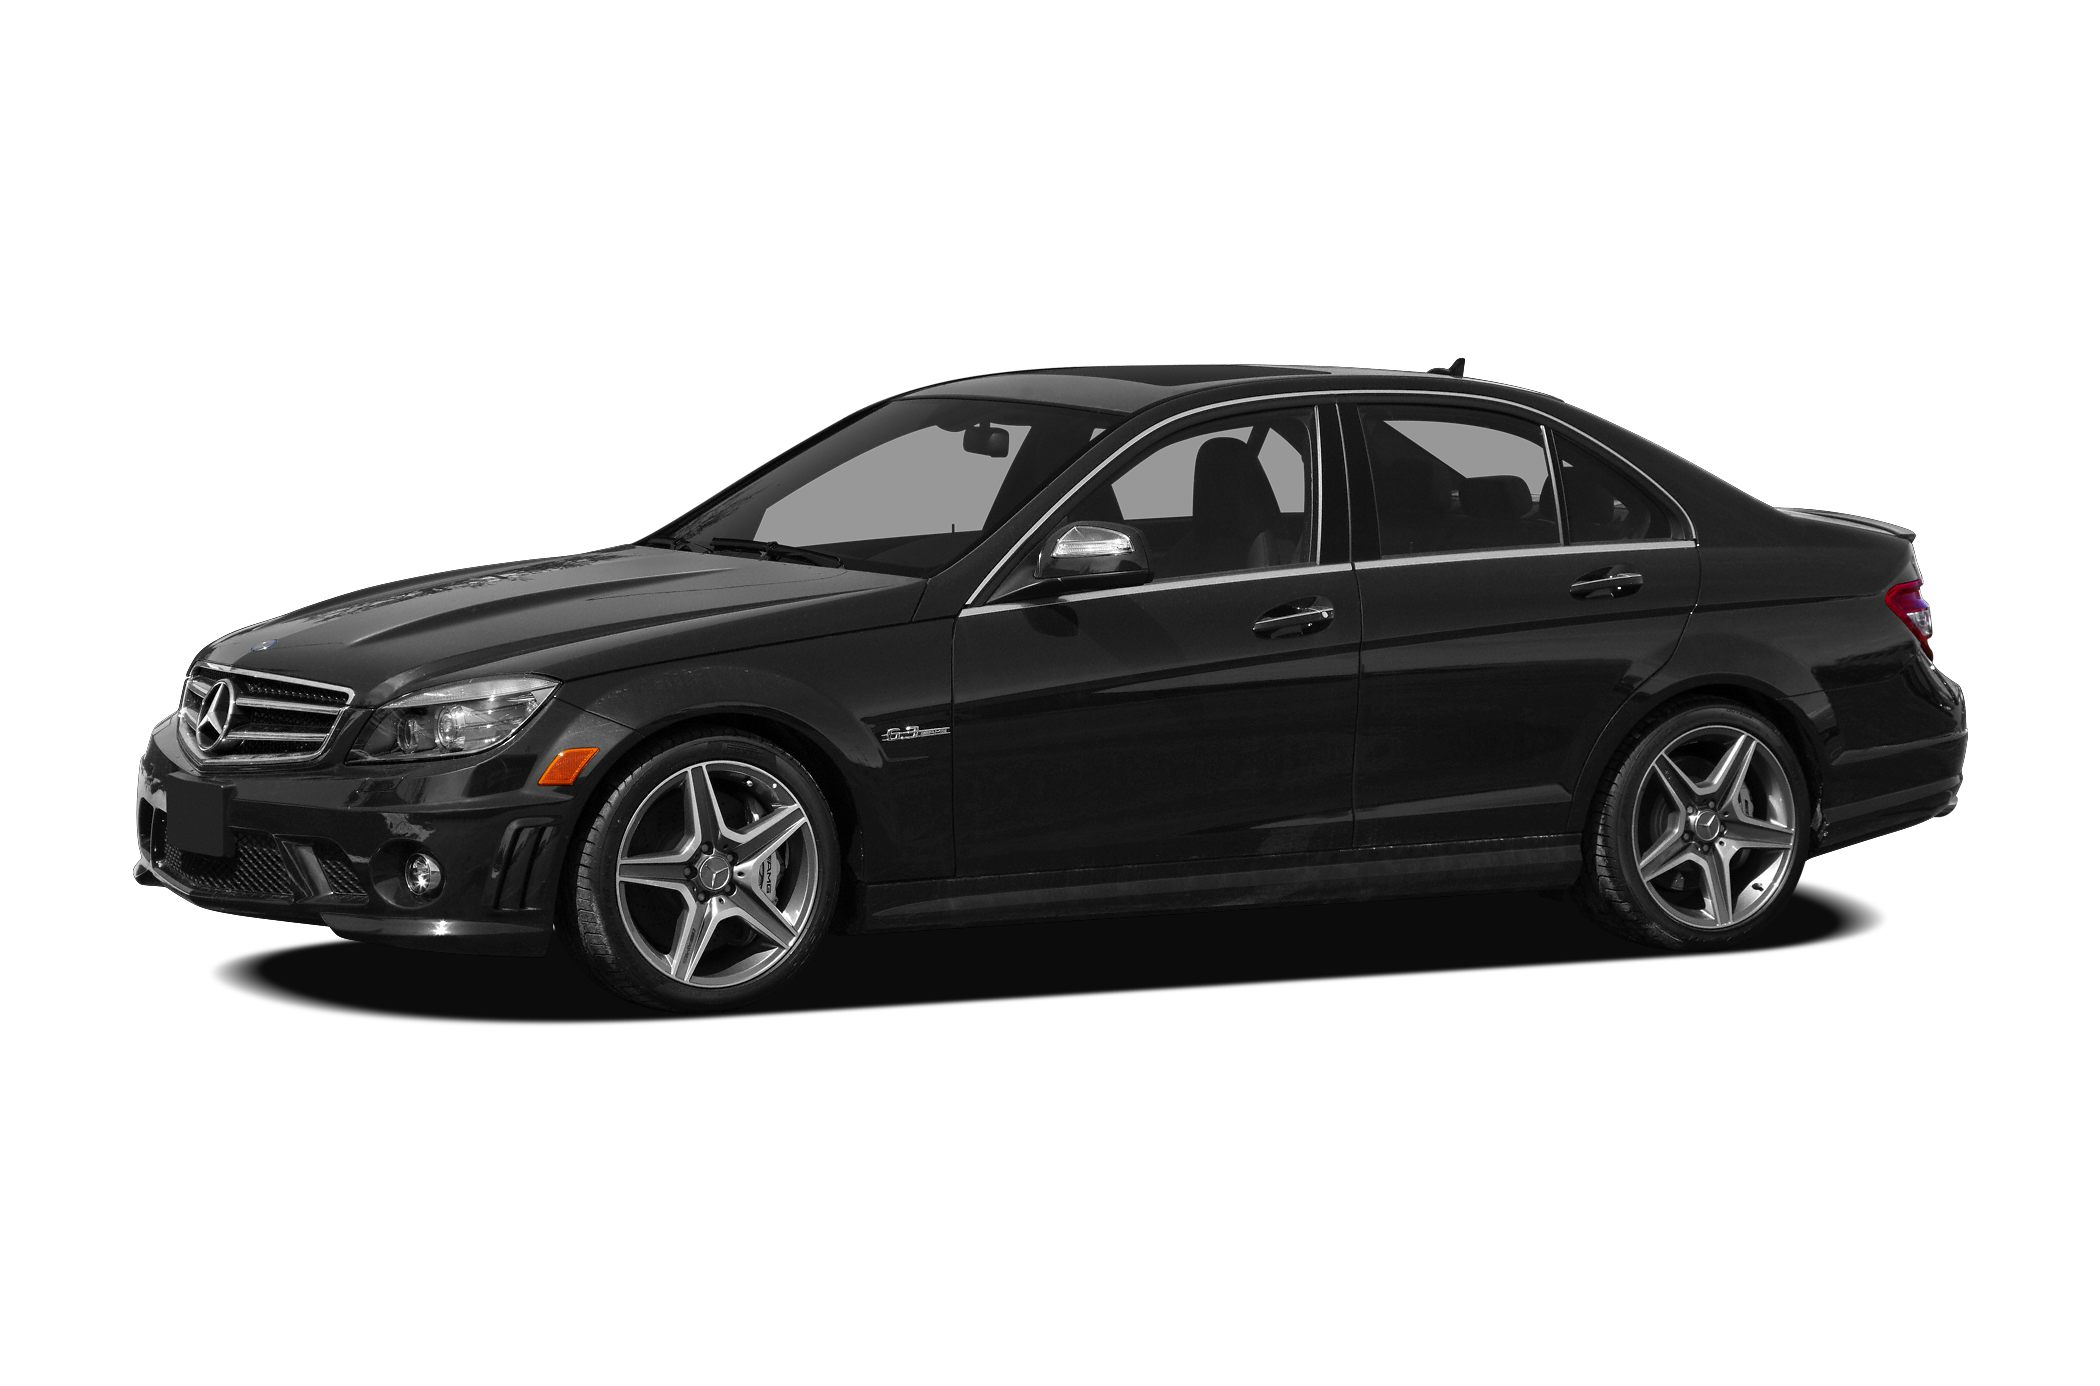 2010 Mercedes Benz C Class Base C 63 AMG 4dr Sedan Pricing and Options